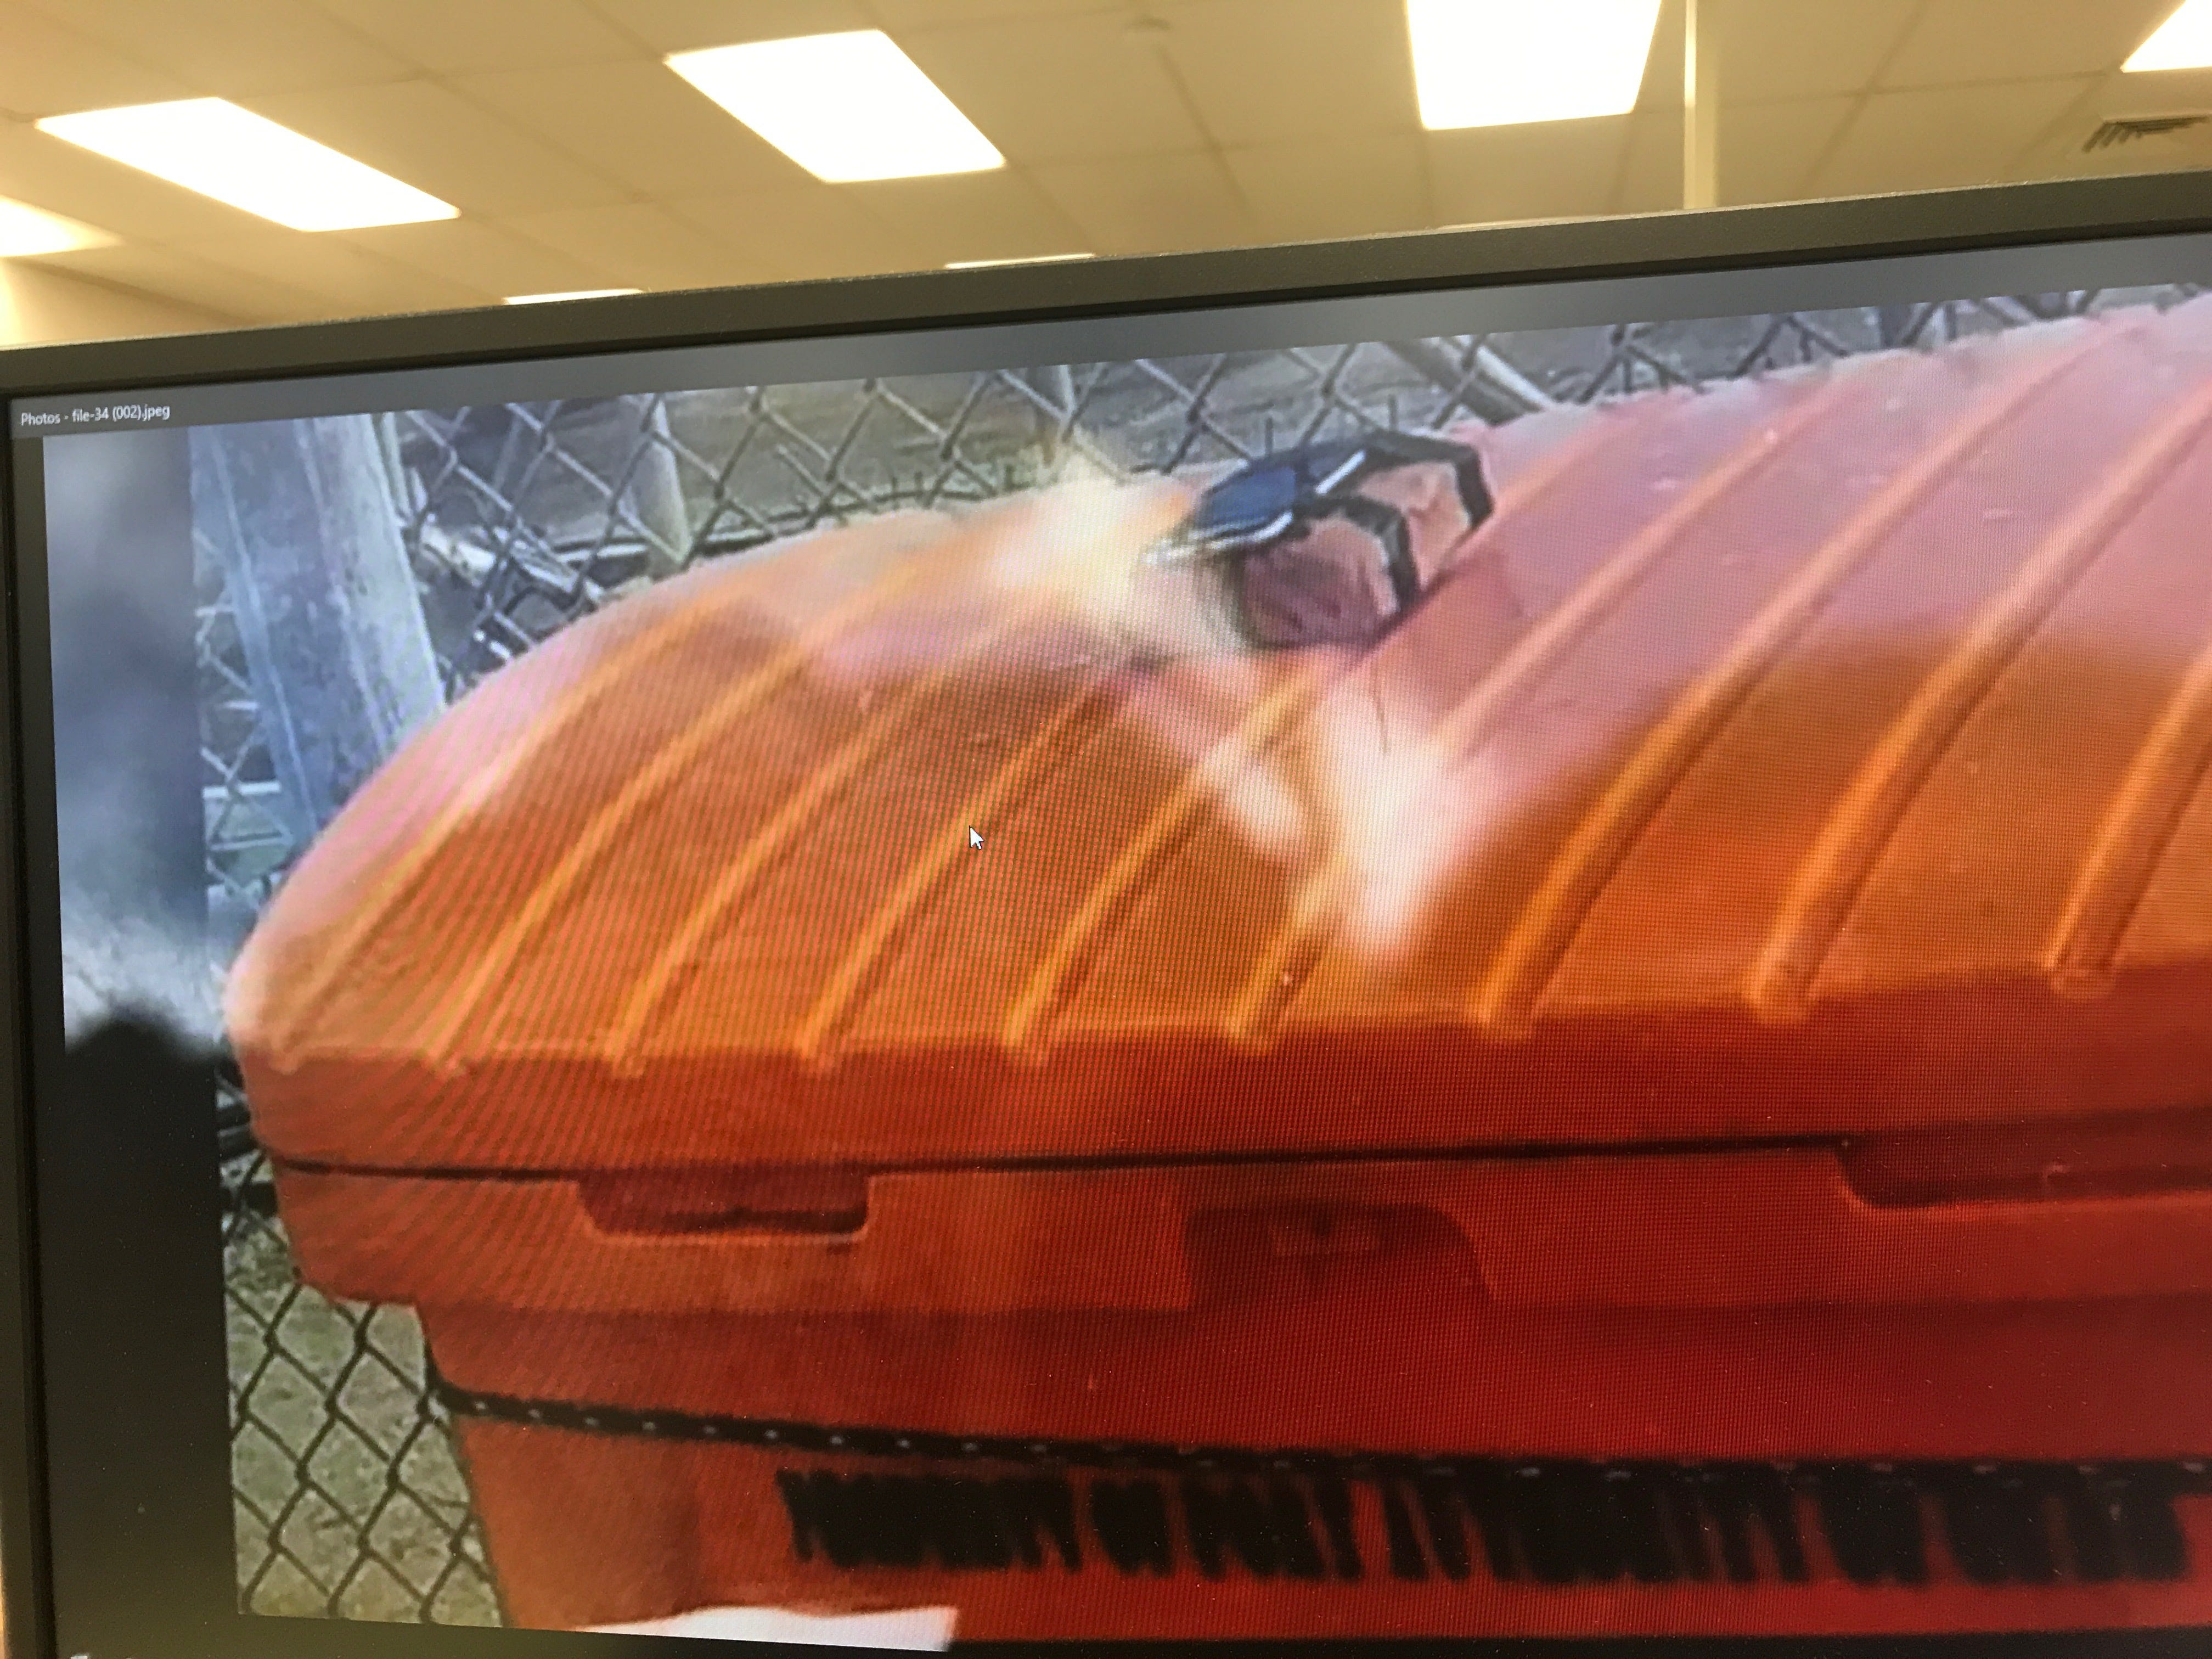 This photo displayed on a computer screen of an object found on top of what appears to be a trash container has been making the social media rounds after local and federal authorities reported a possible live ordnance discovered at the Agat Marina. Guam Fire Department spokesman Kevin Reilly confirmed this photo is what authorities found Tuesday, March 12, 2019.